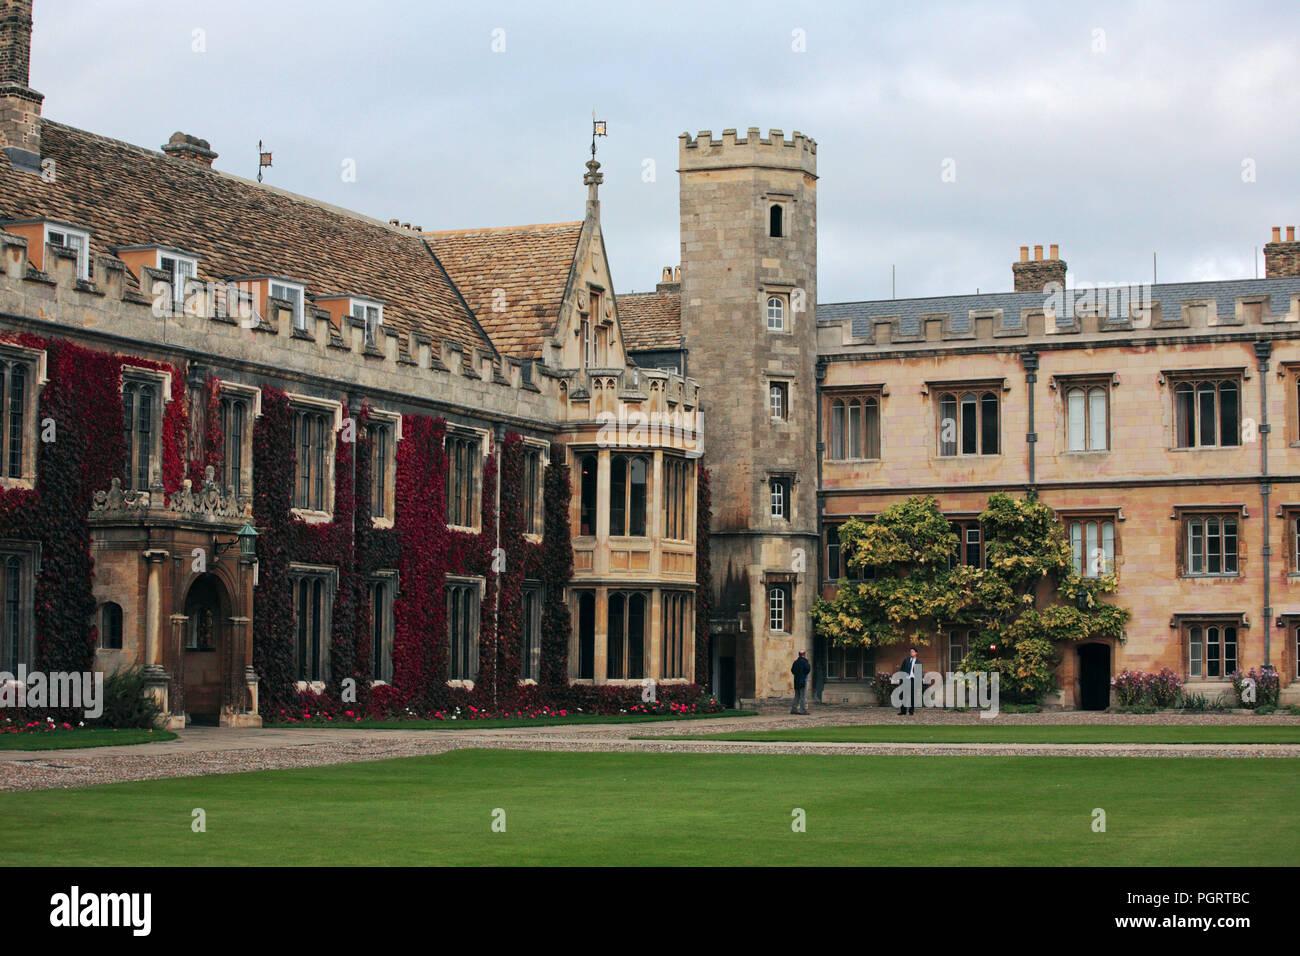 Corner of the Great Court by the Master's Lodge, Trinity College, Cambridge, England, UK - Stock Image